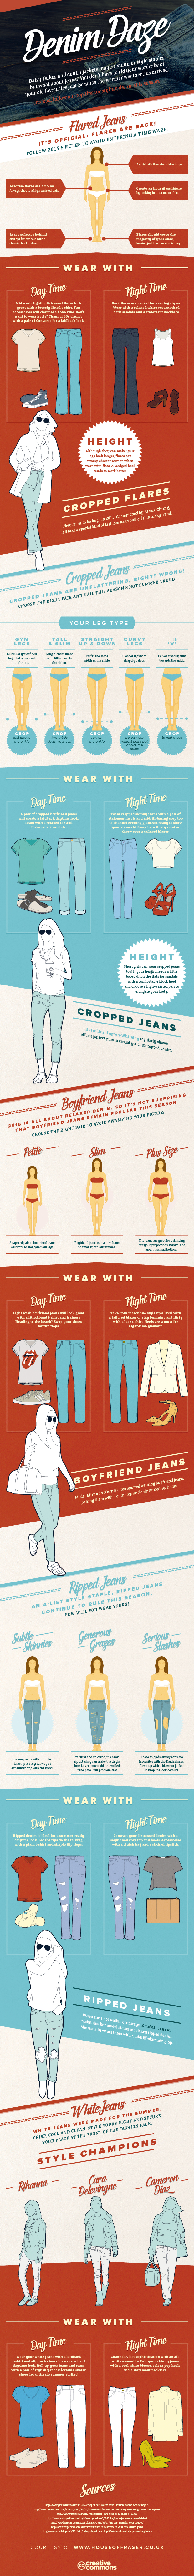 HoF Denim Daze Infographic Texture